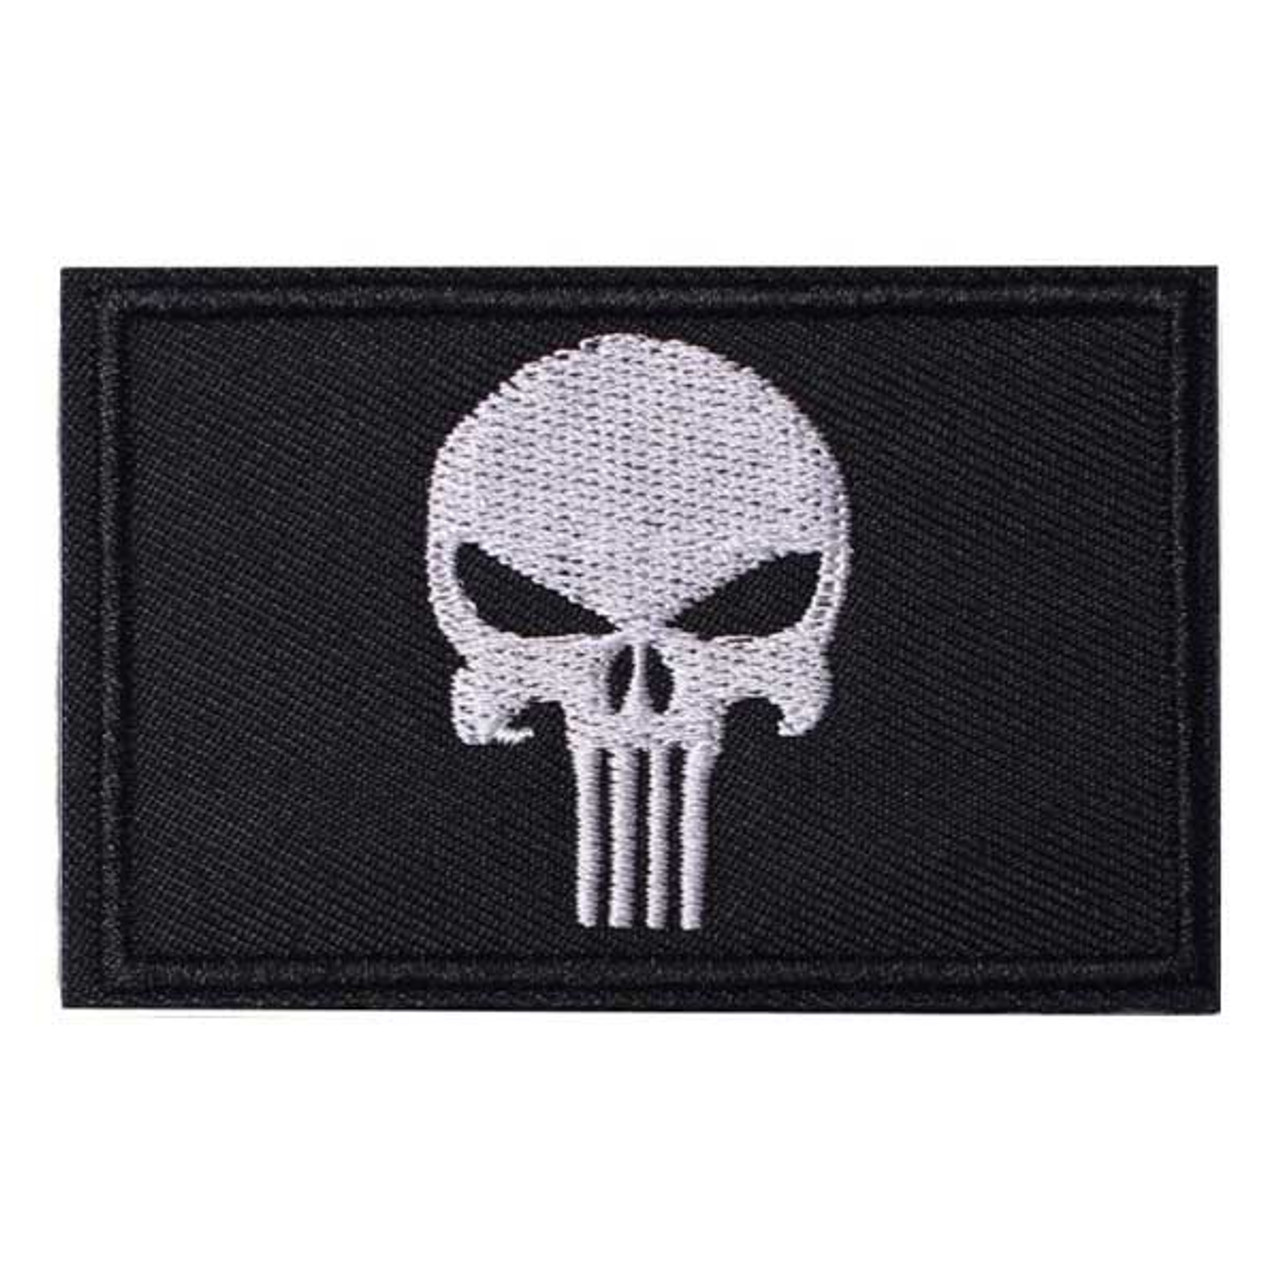 Skull Tactical Patch